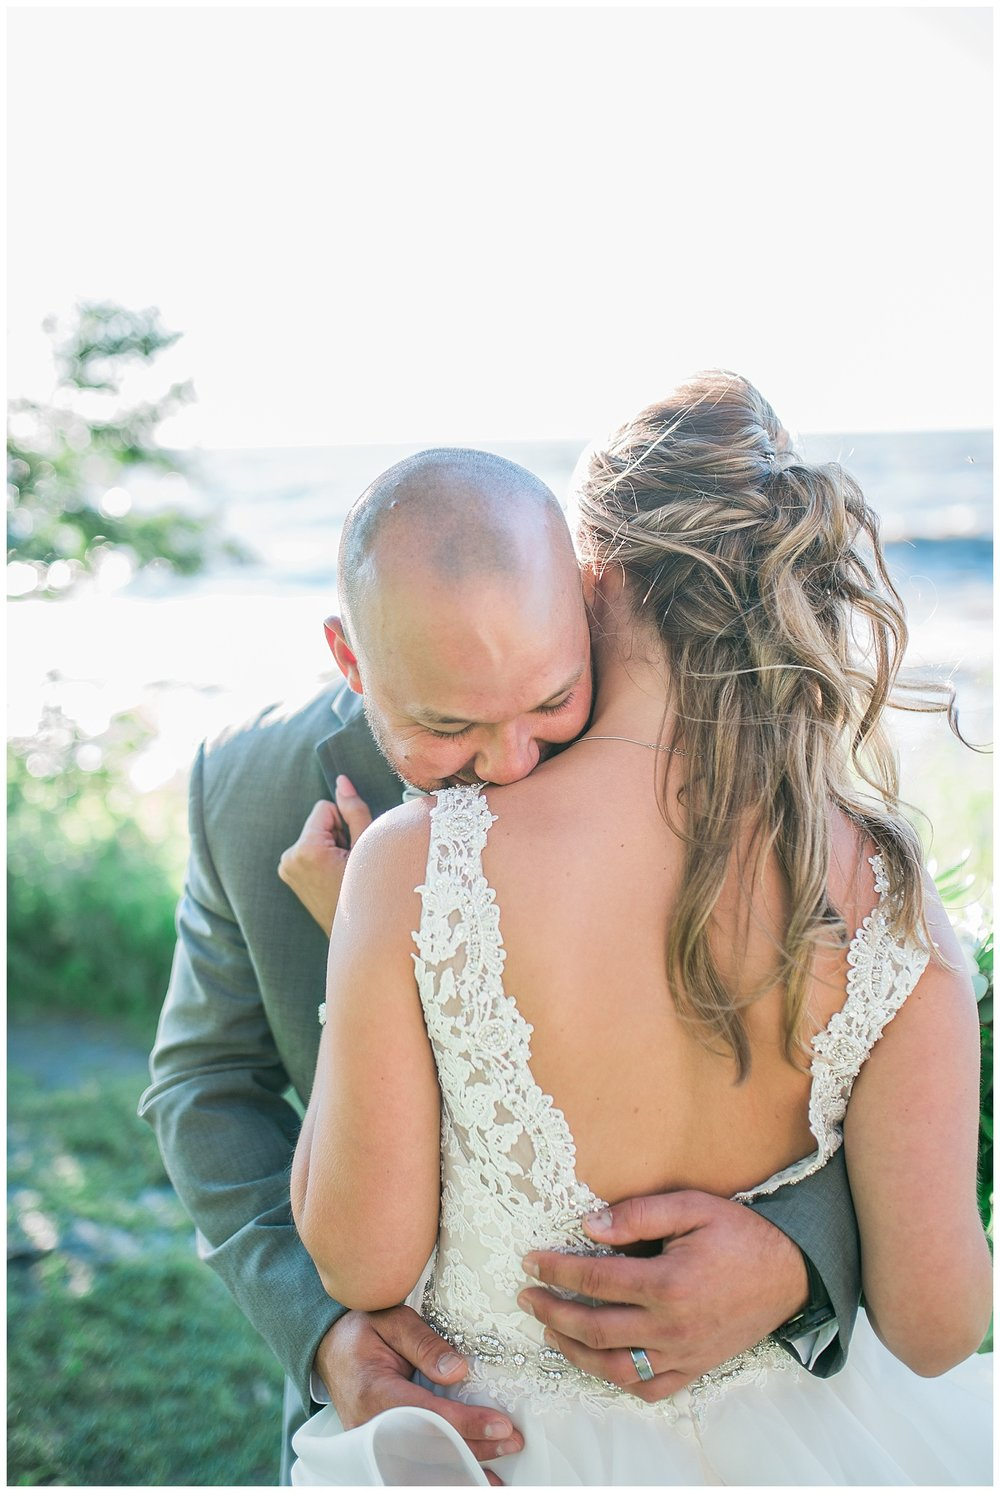 Sean and Andrea - Webster wedding - lass and beau-1057_Buffalo wedding photography.jpg